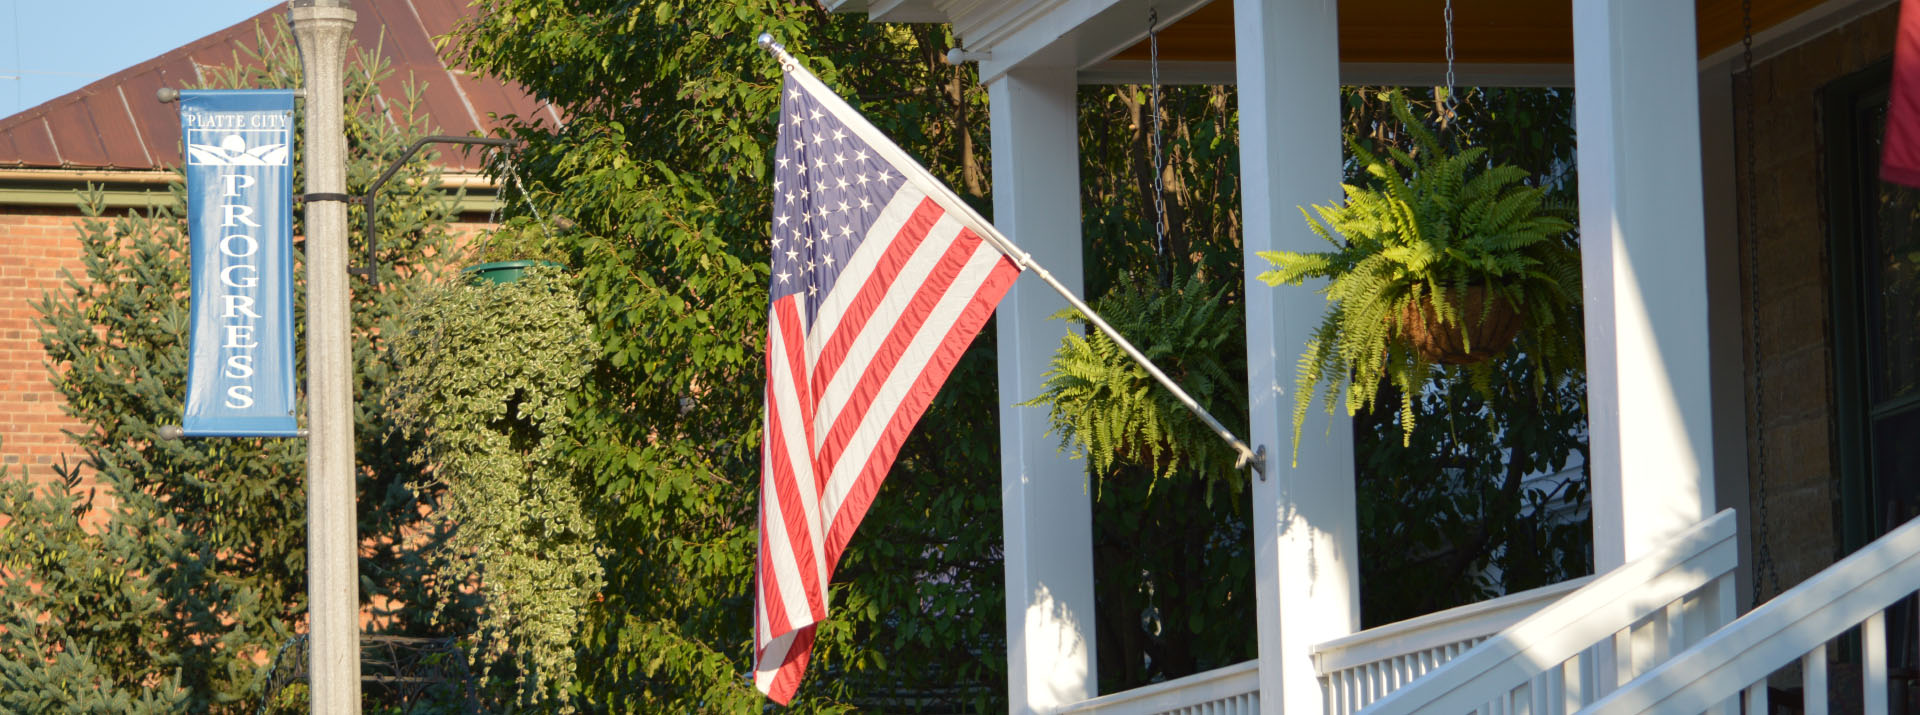 American flag on a porch